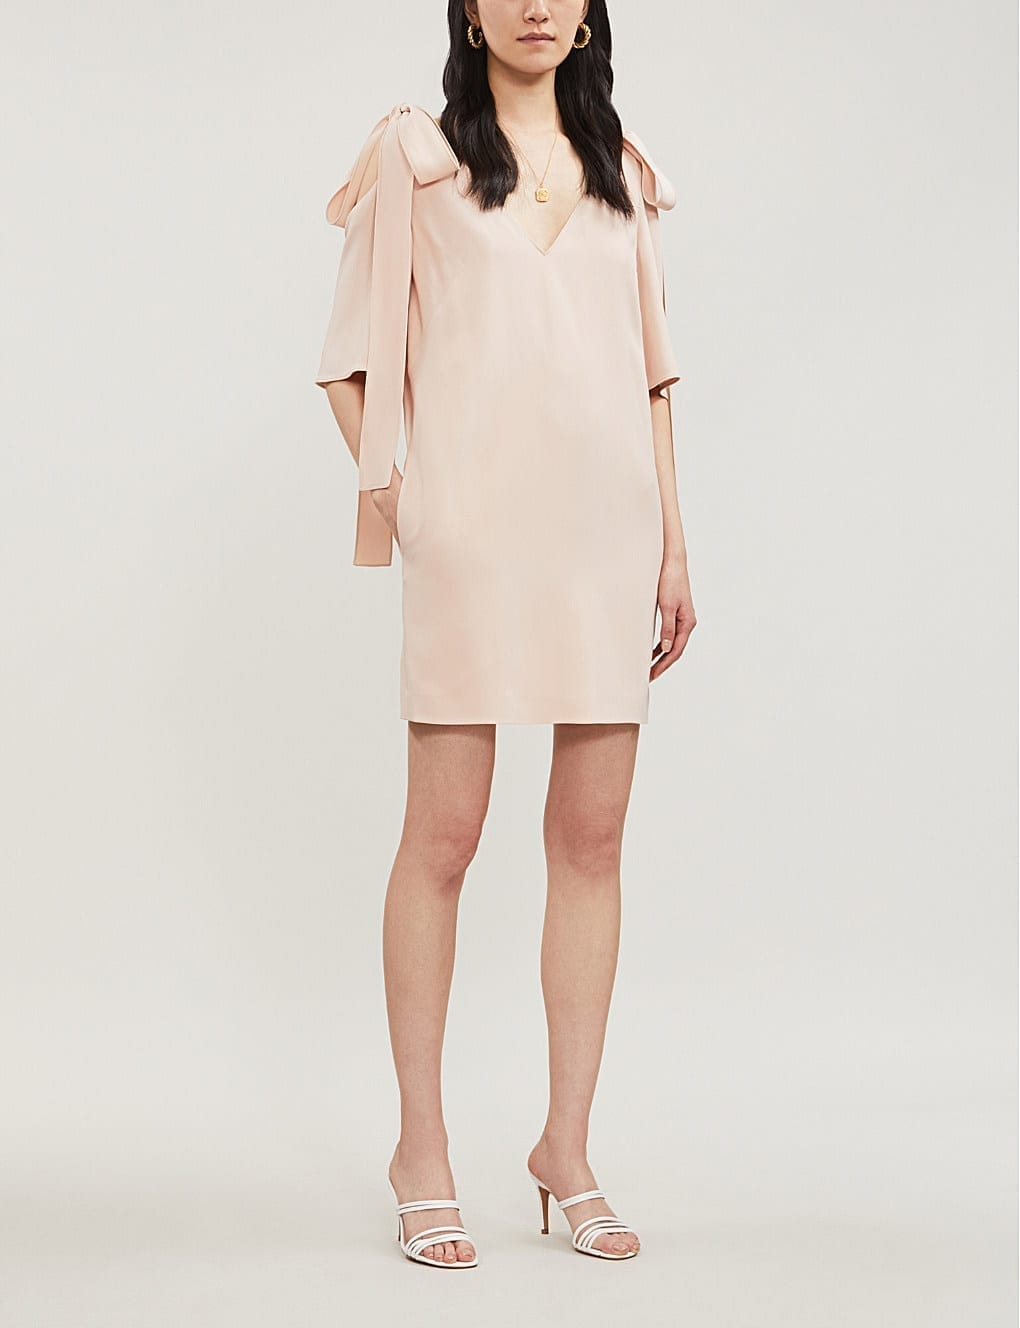 STELLA MCCARTNEY Tie-detail Cold-Shoulder Crepe Rose Pink Dress